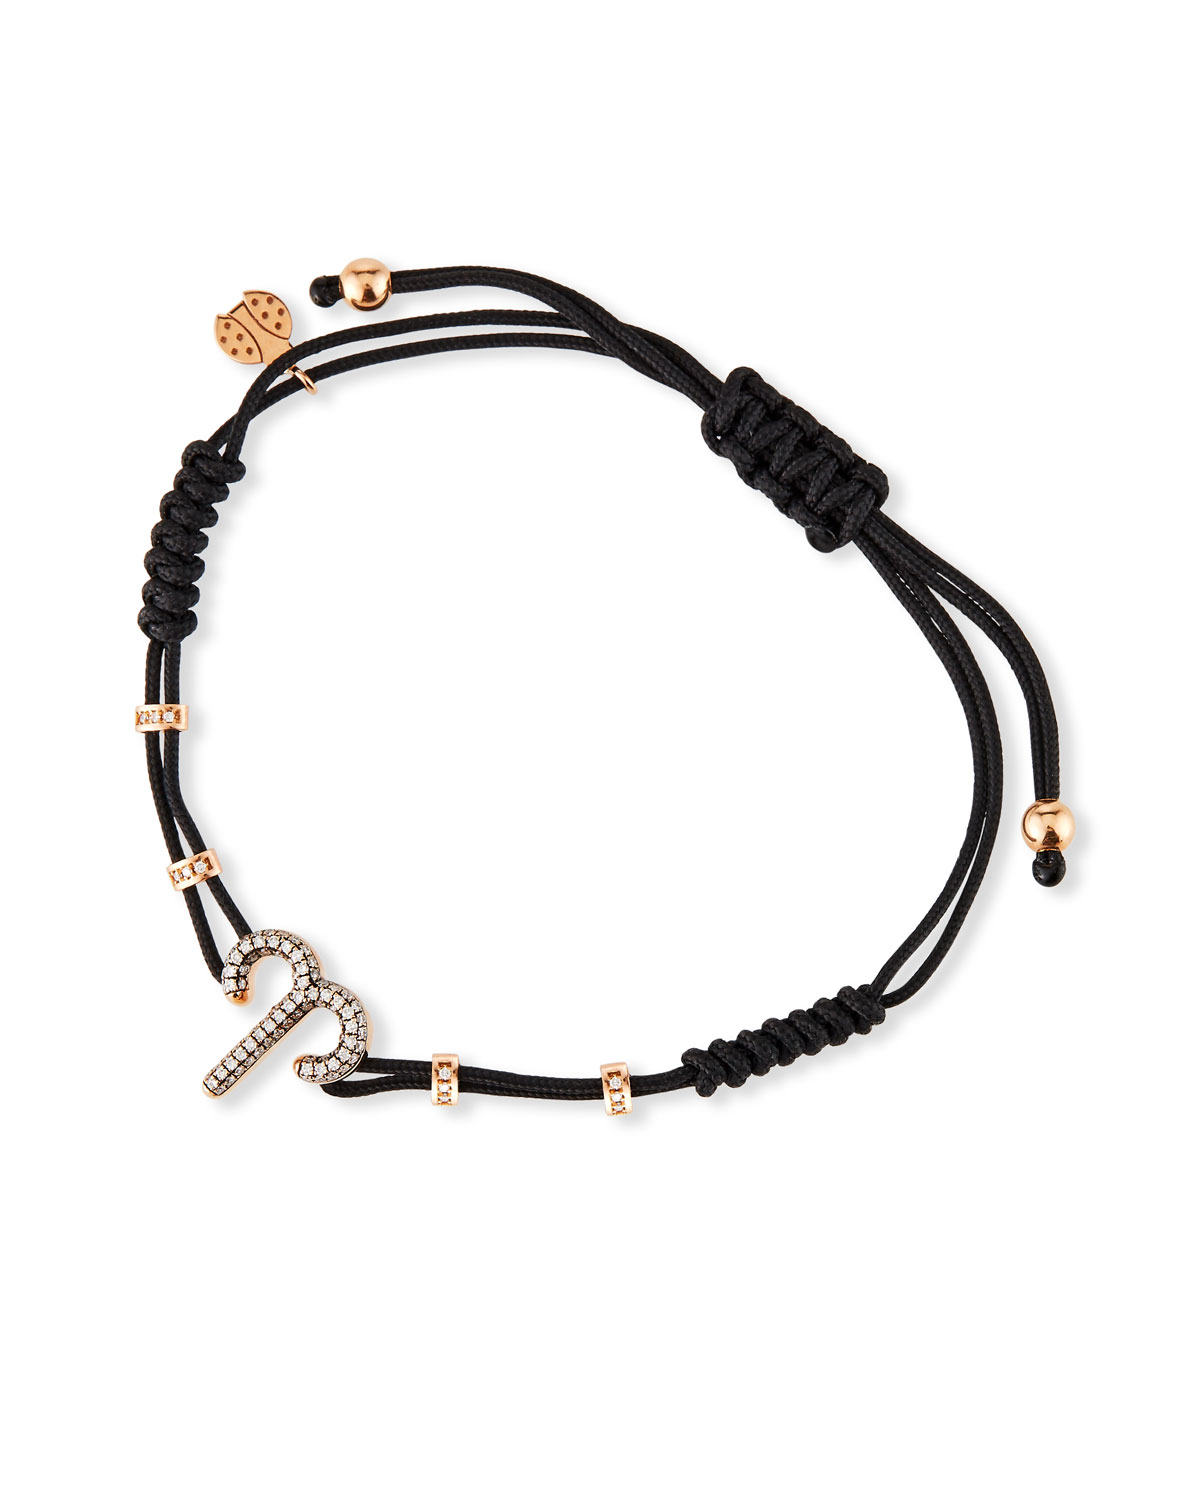 Pippo Perez 18k Pink Gold Diamond Aries Pull-Cord Bracelet